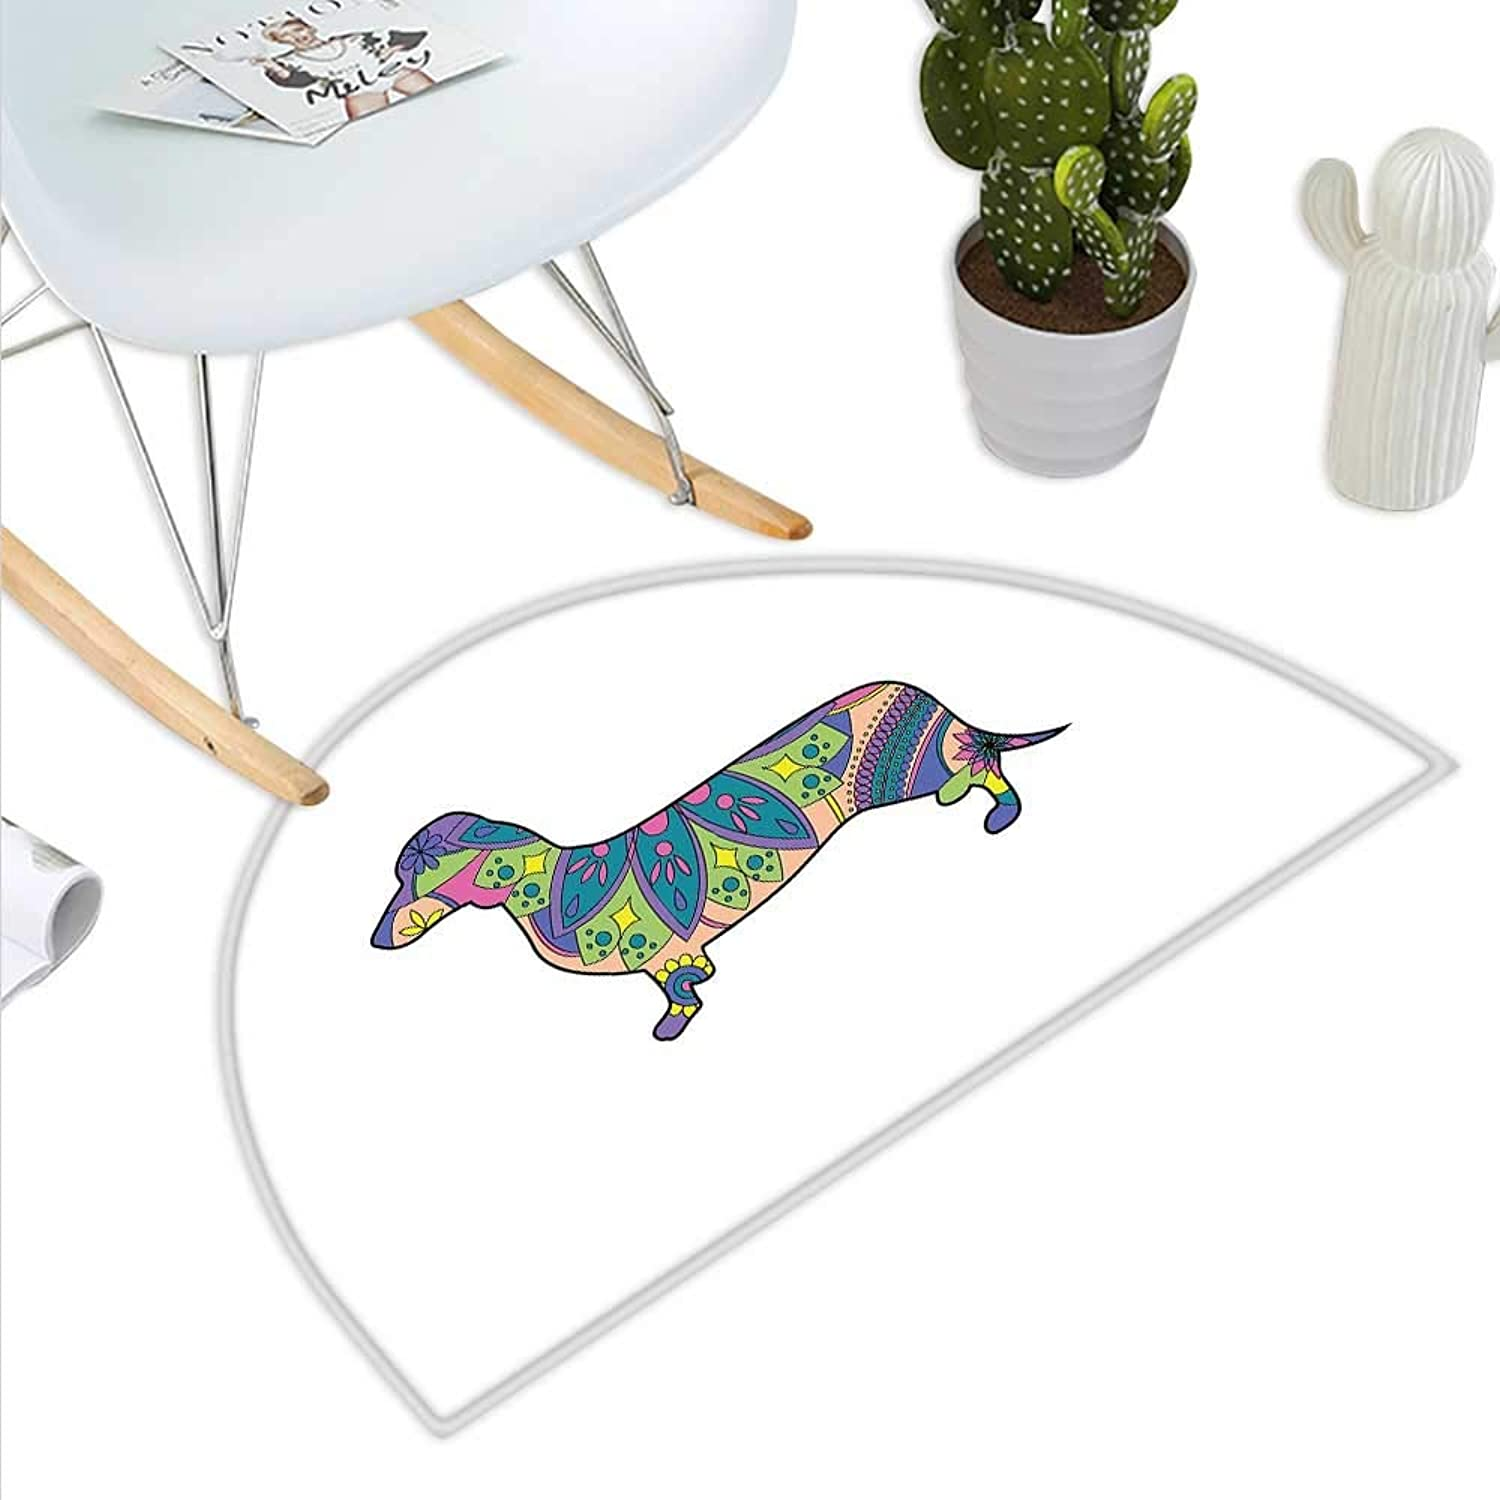 Dachshund Semicircle Doormat colorful Small Puppy Silhouette with Floral Composition Pattern Lily Blossom Halfmoon doormats H 39.3  xD 59  Multicolor